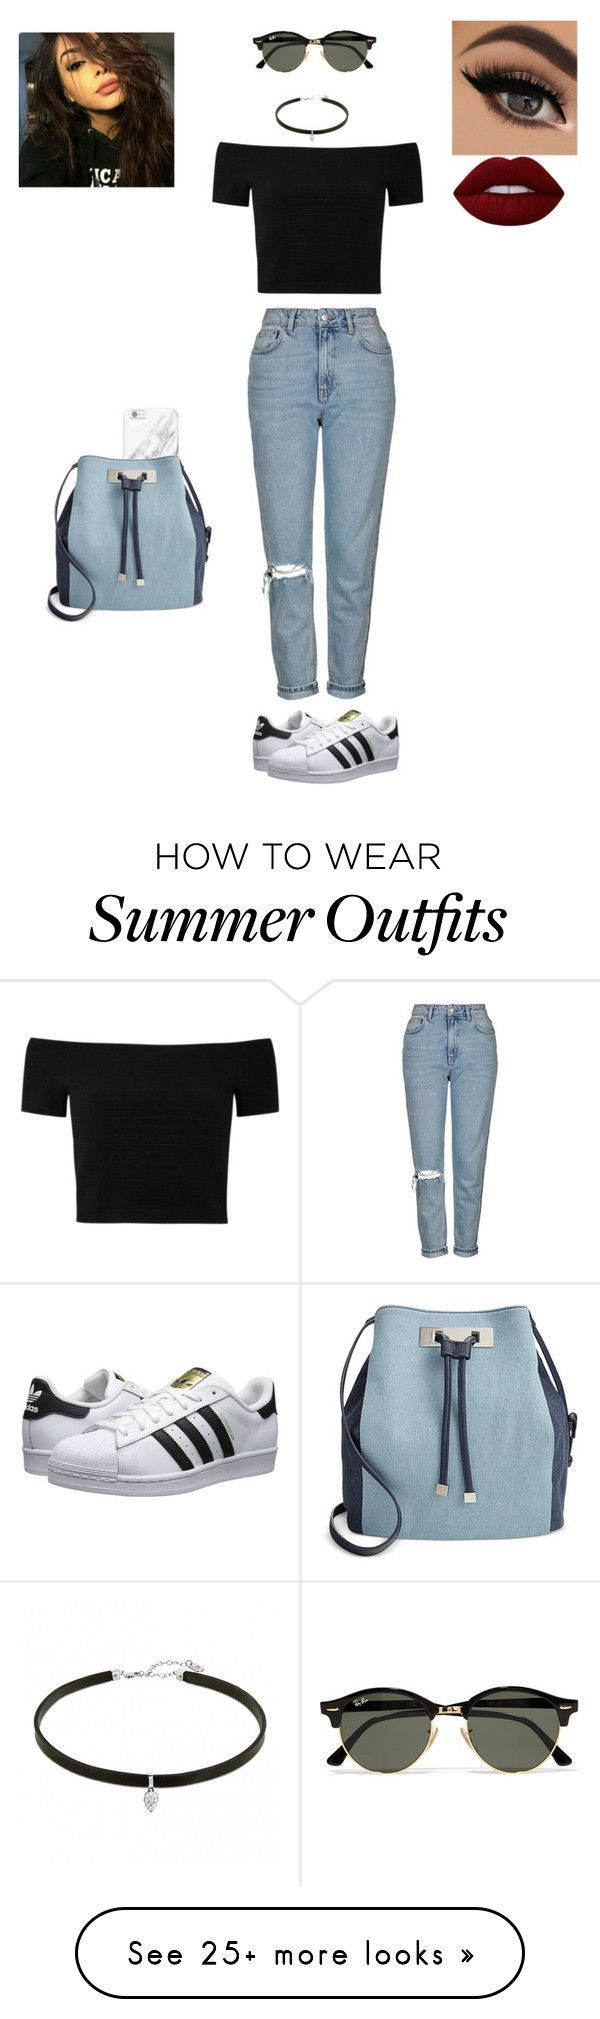 Tumblr summer outfit by treasurematlock on Polyvore featuring Lime Crime, Ray-Ban, Alice   Olivia, Topshop, adidas Originals and INC International Concepts